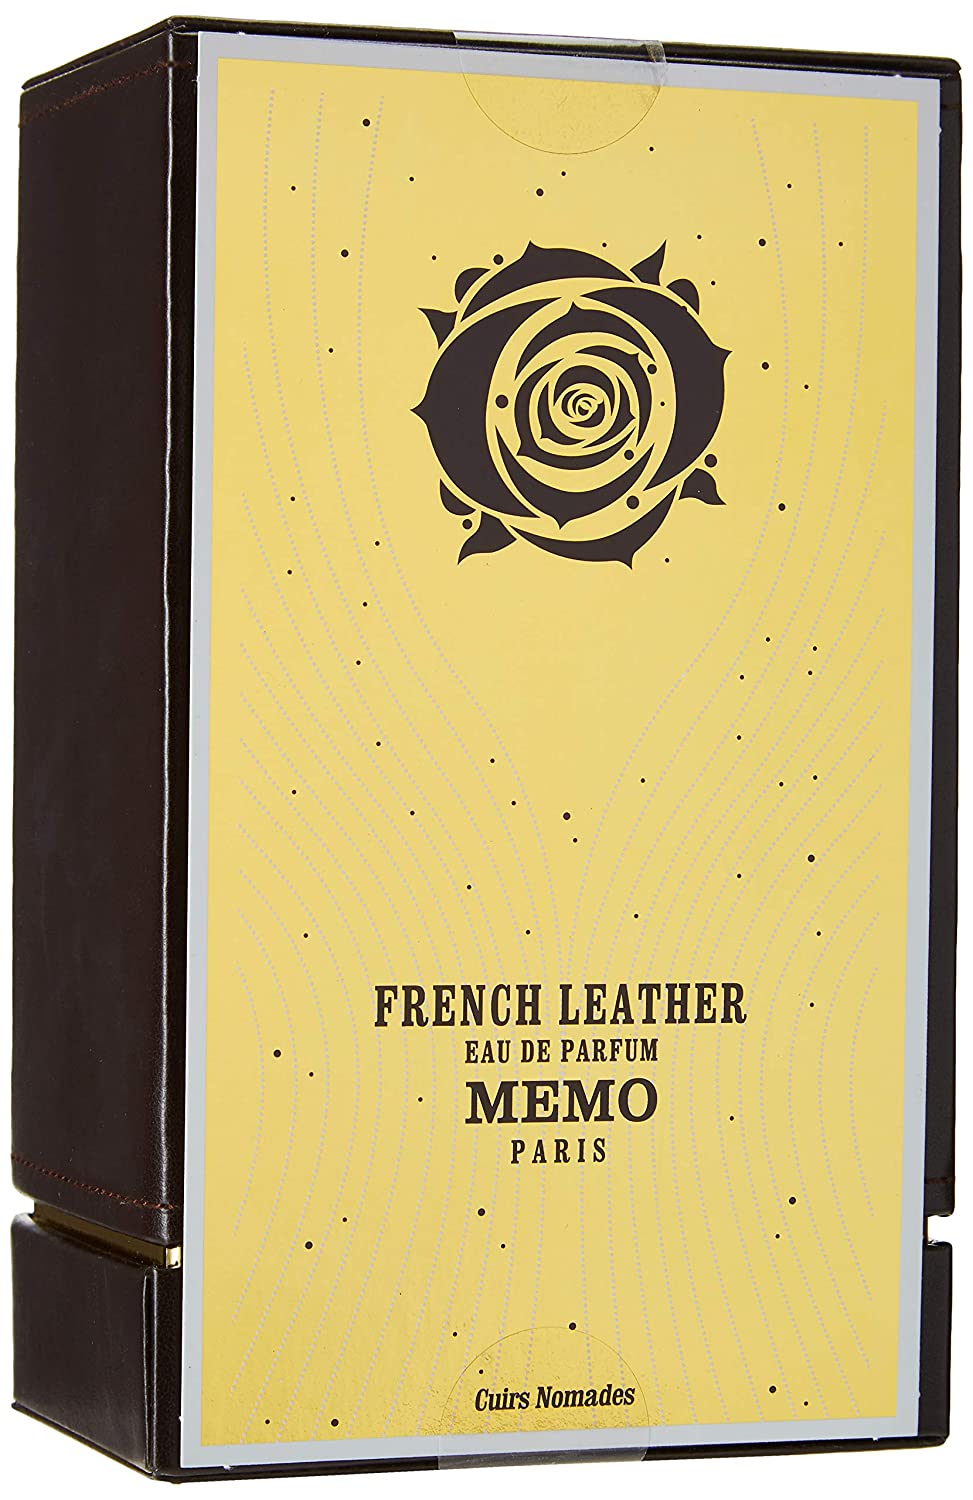 Memo Paris French Leather Cuirs Nomades, edp 75ml